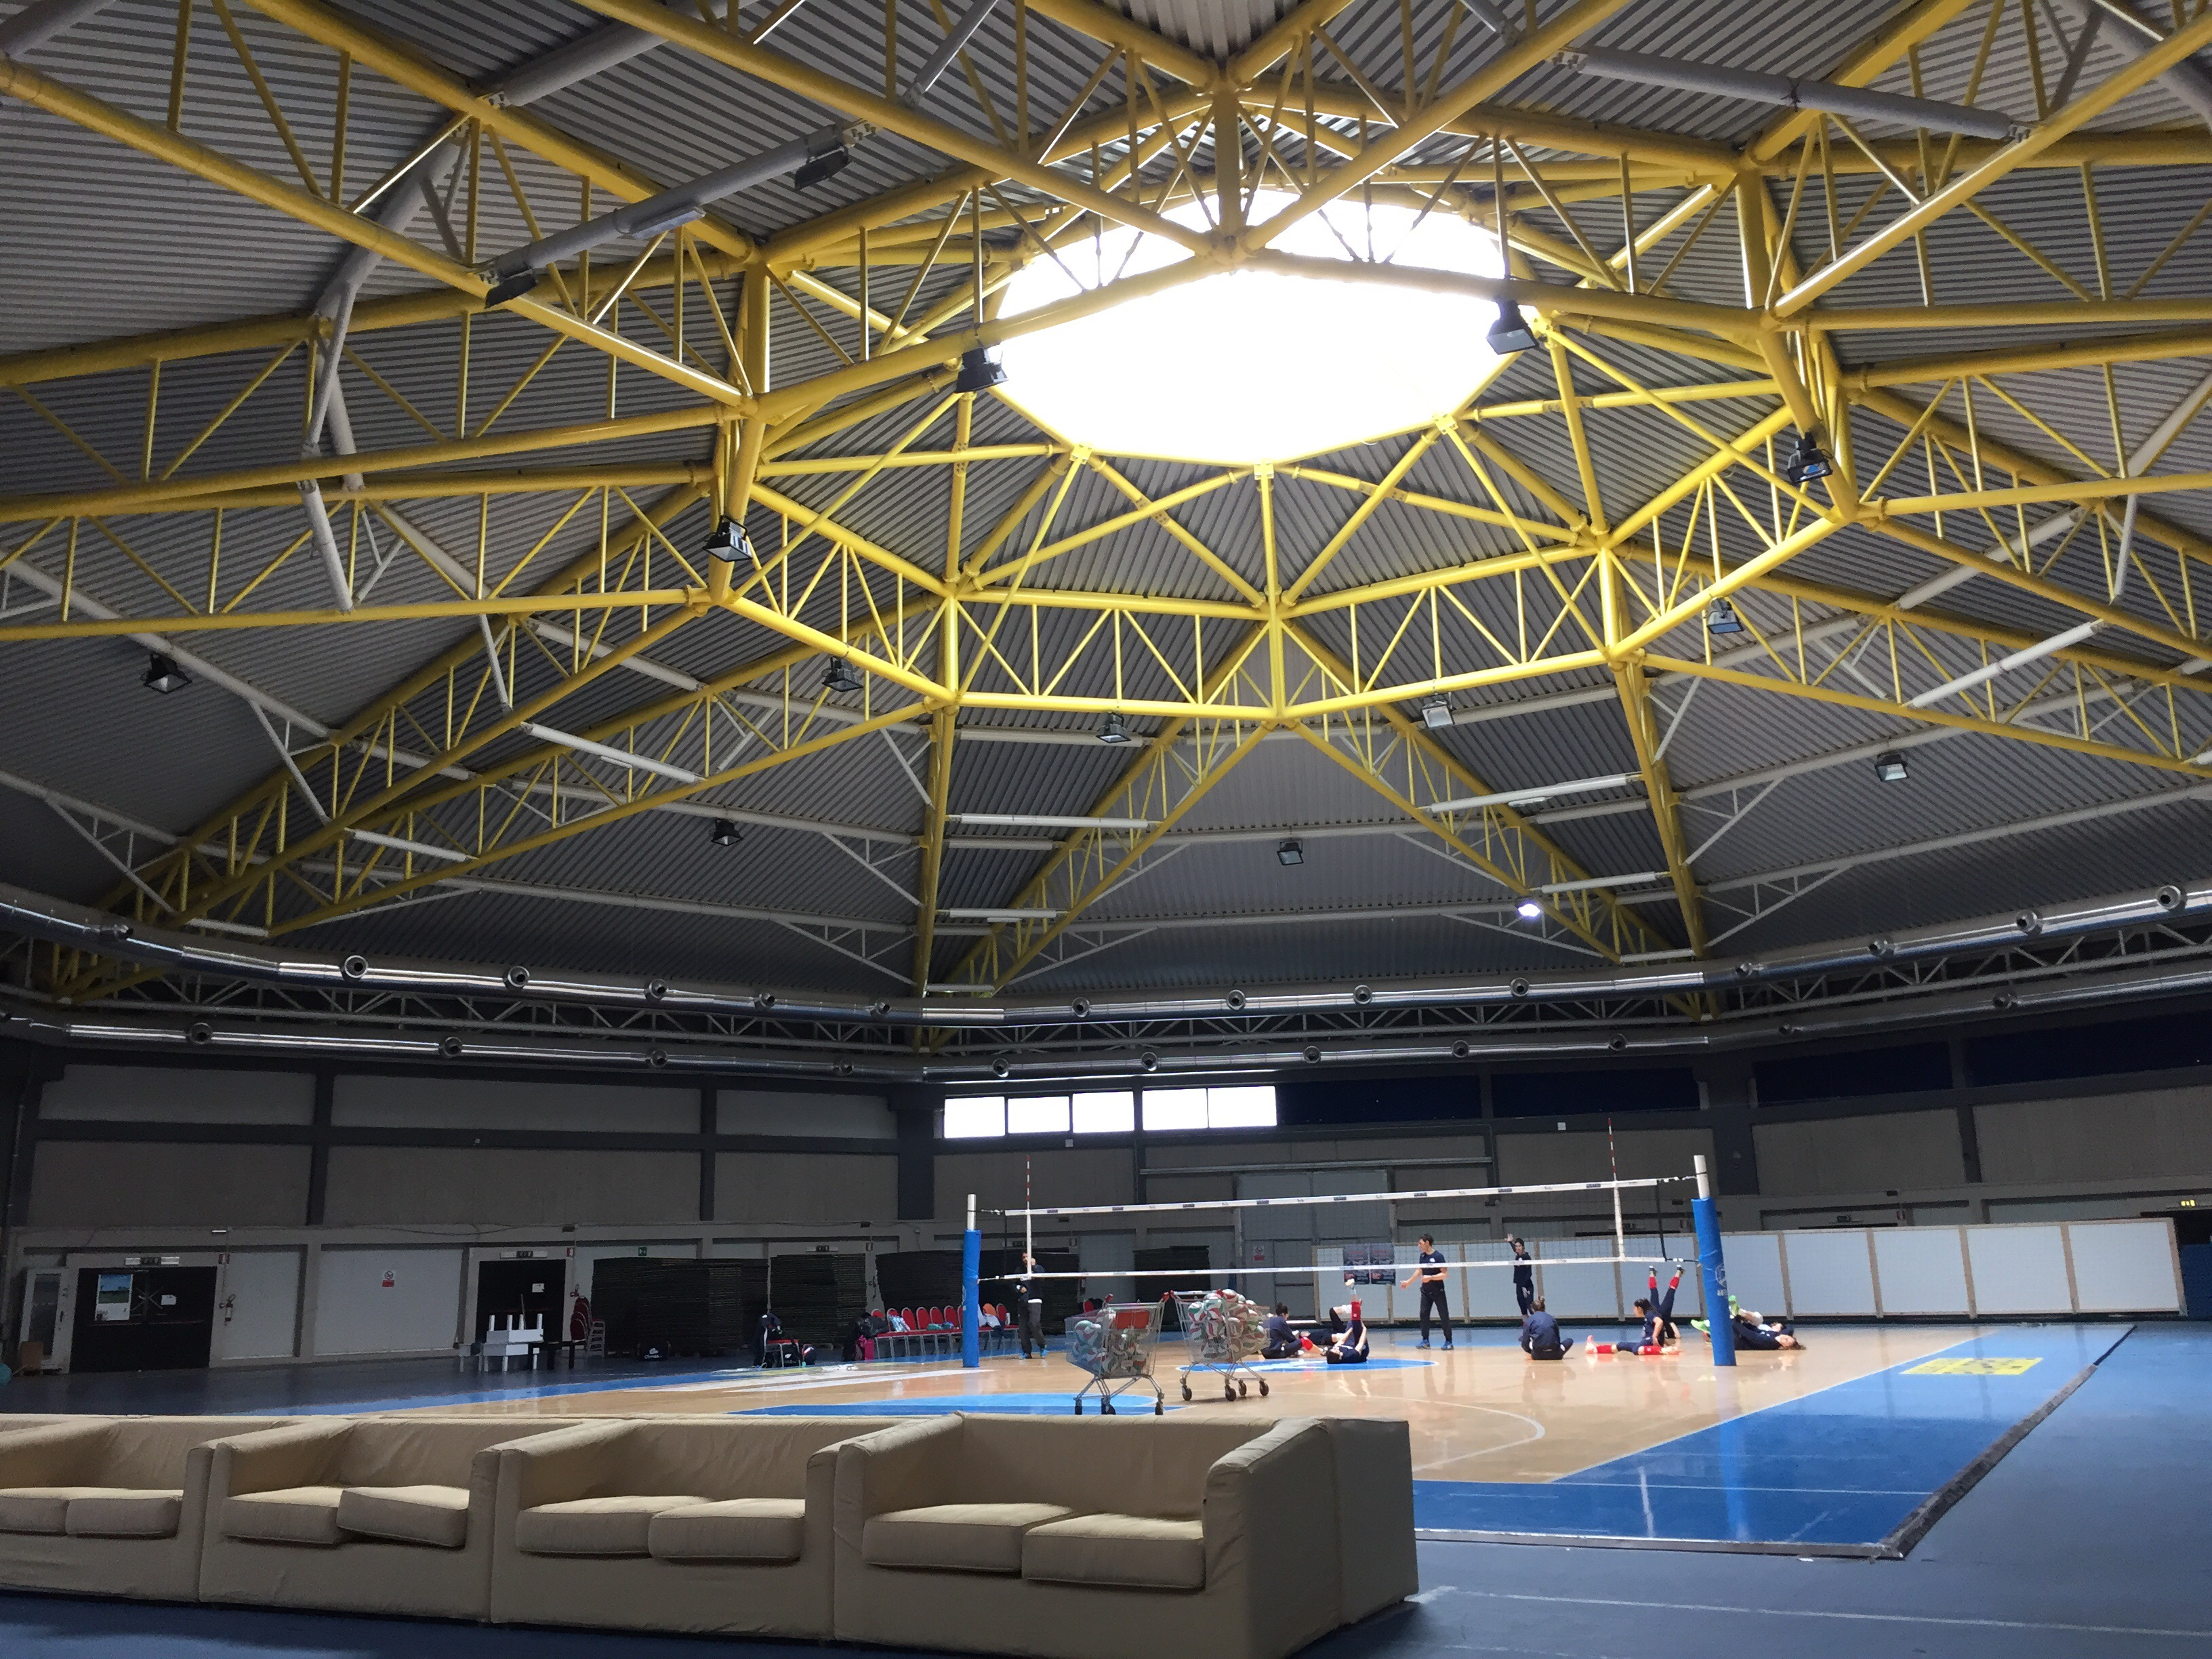 Sports arena in Geo Village that hosts many events and sports tournaments | Olbia, Sardinia | BrowsingItaly.com